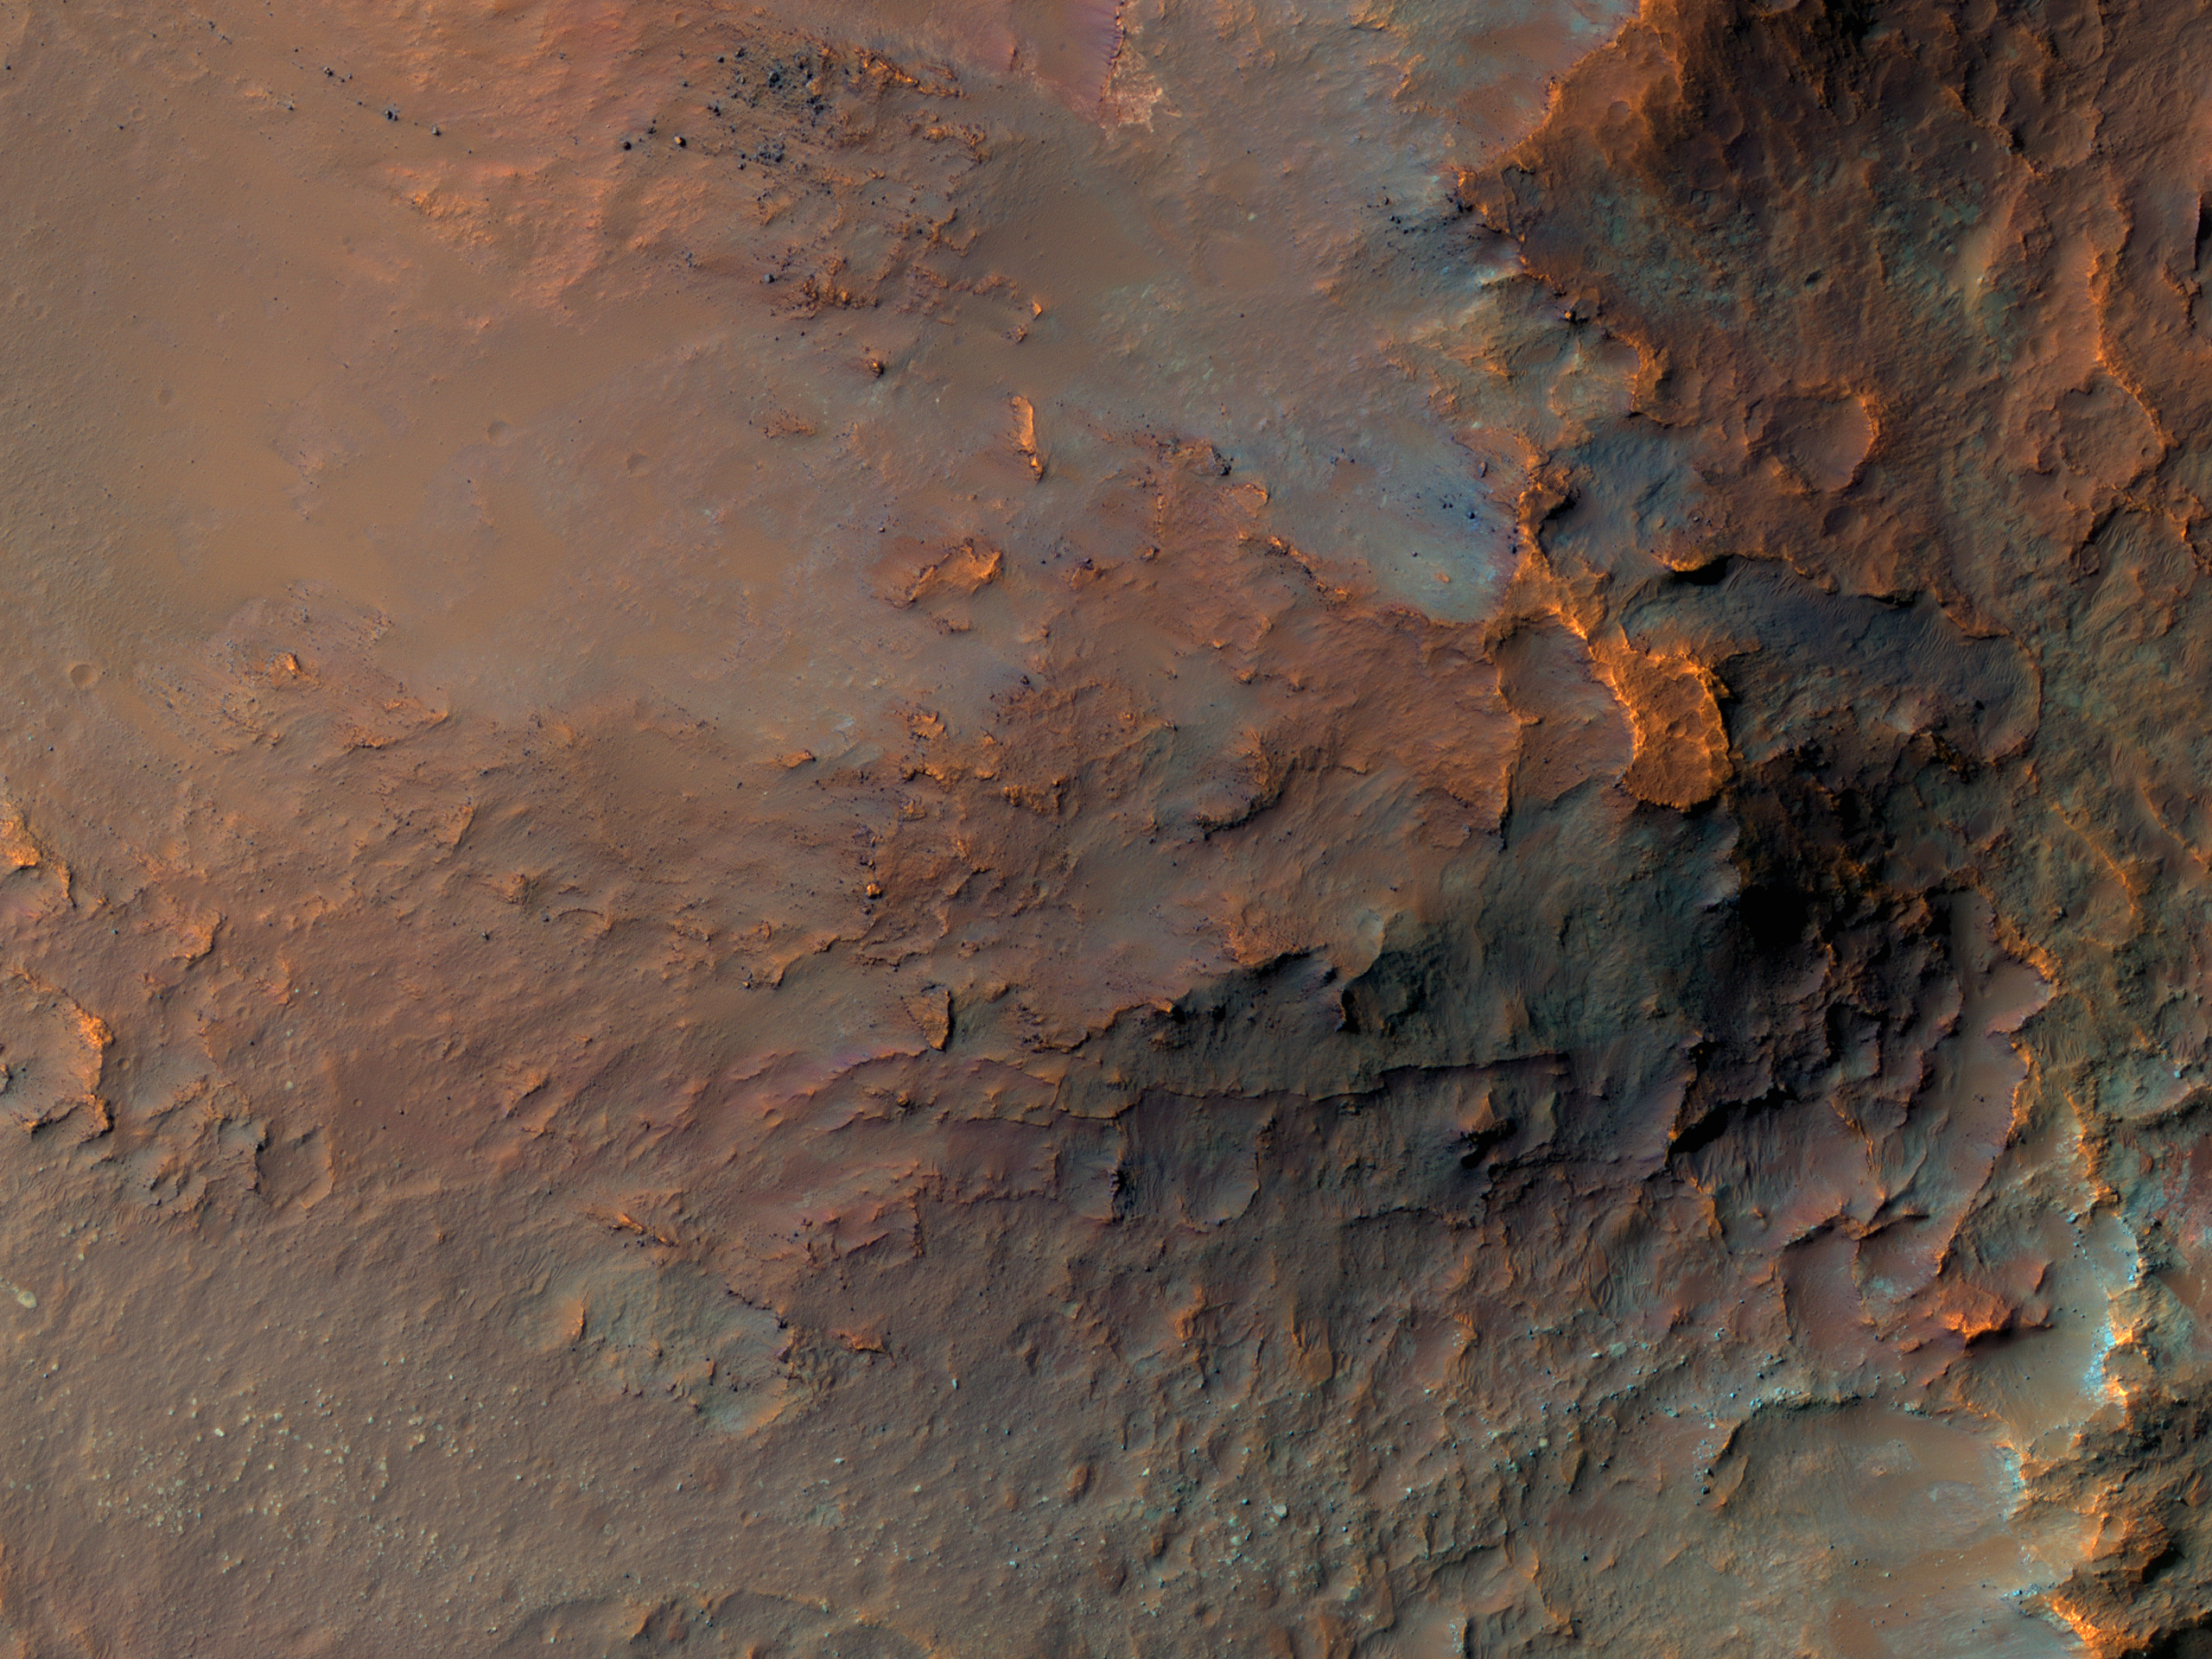 A Colorful Landslide in Eos Chasma